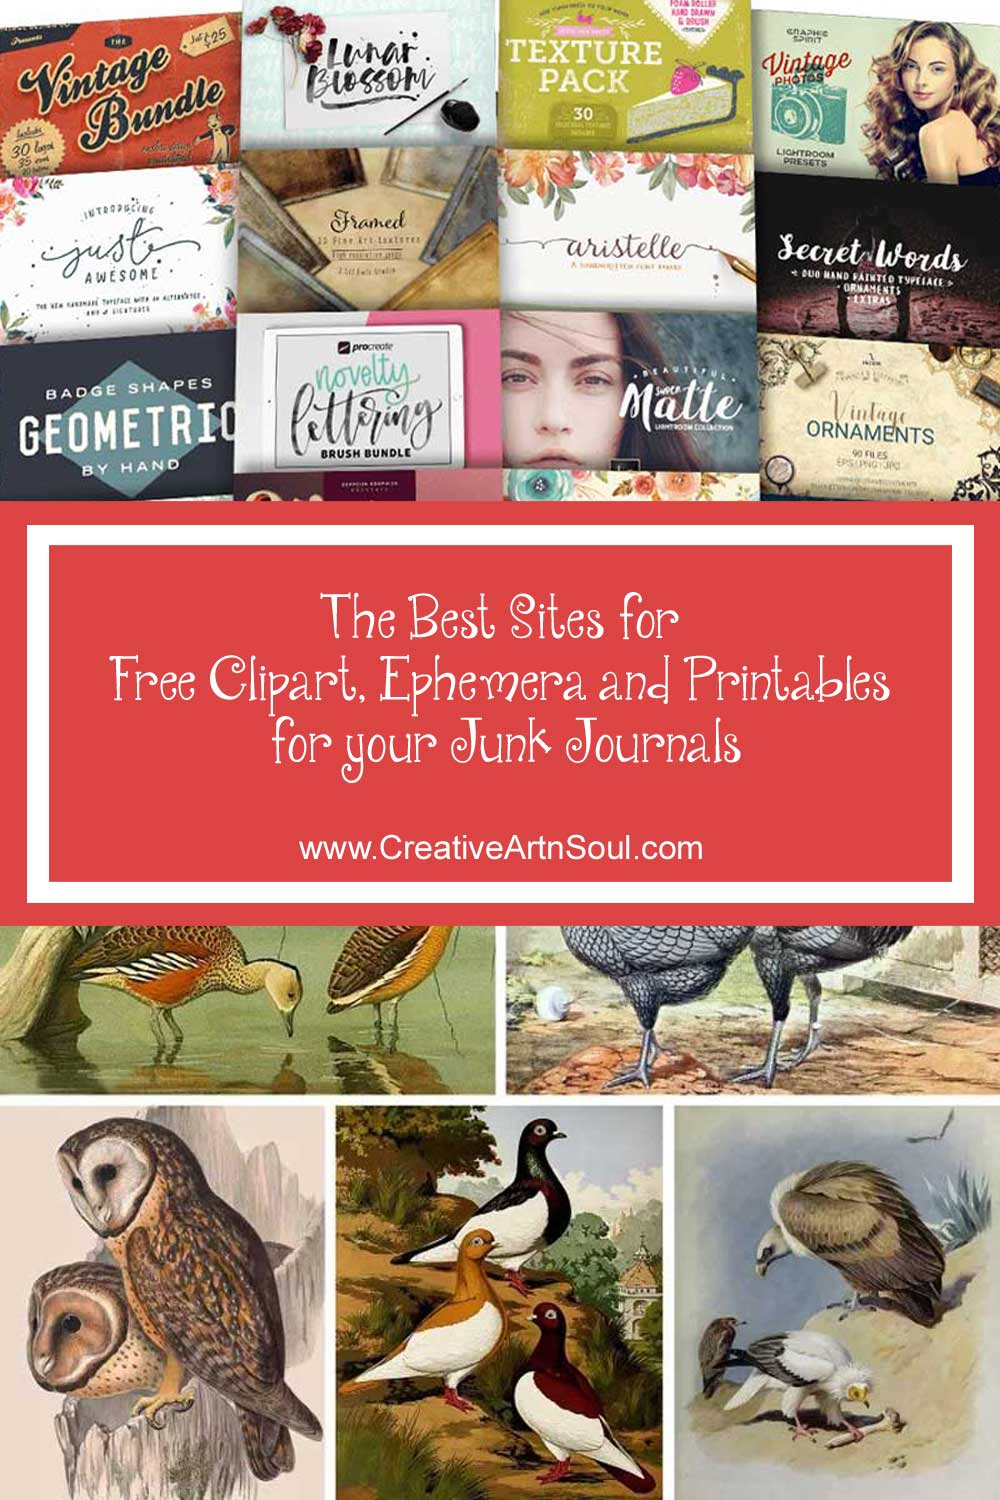 The Best Sites for Free Clipart, Ephemera and Printables for your Junk Journals and Art Journals